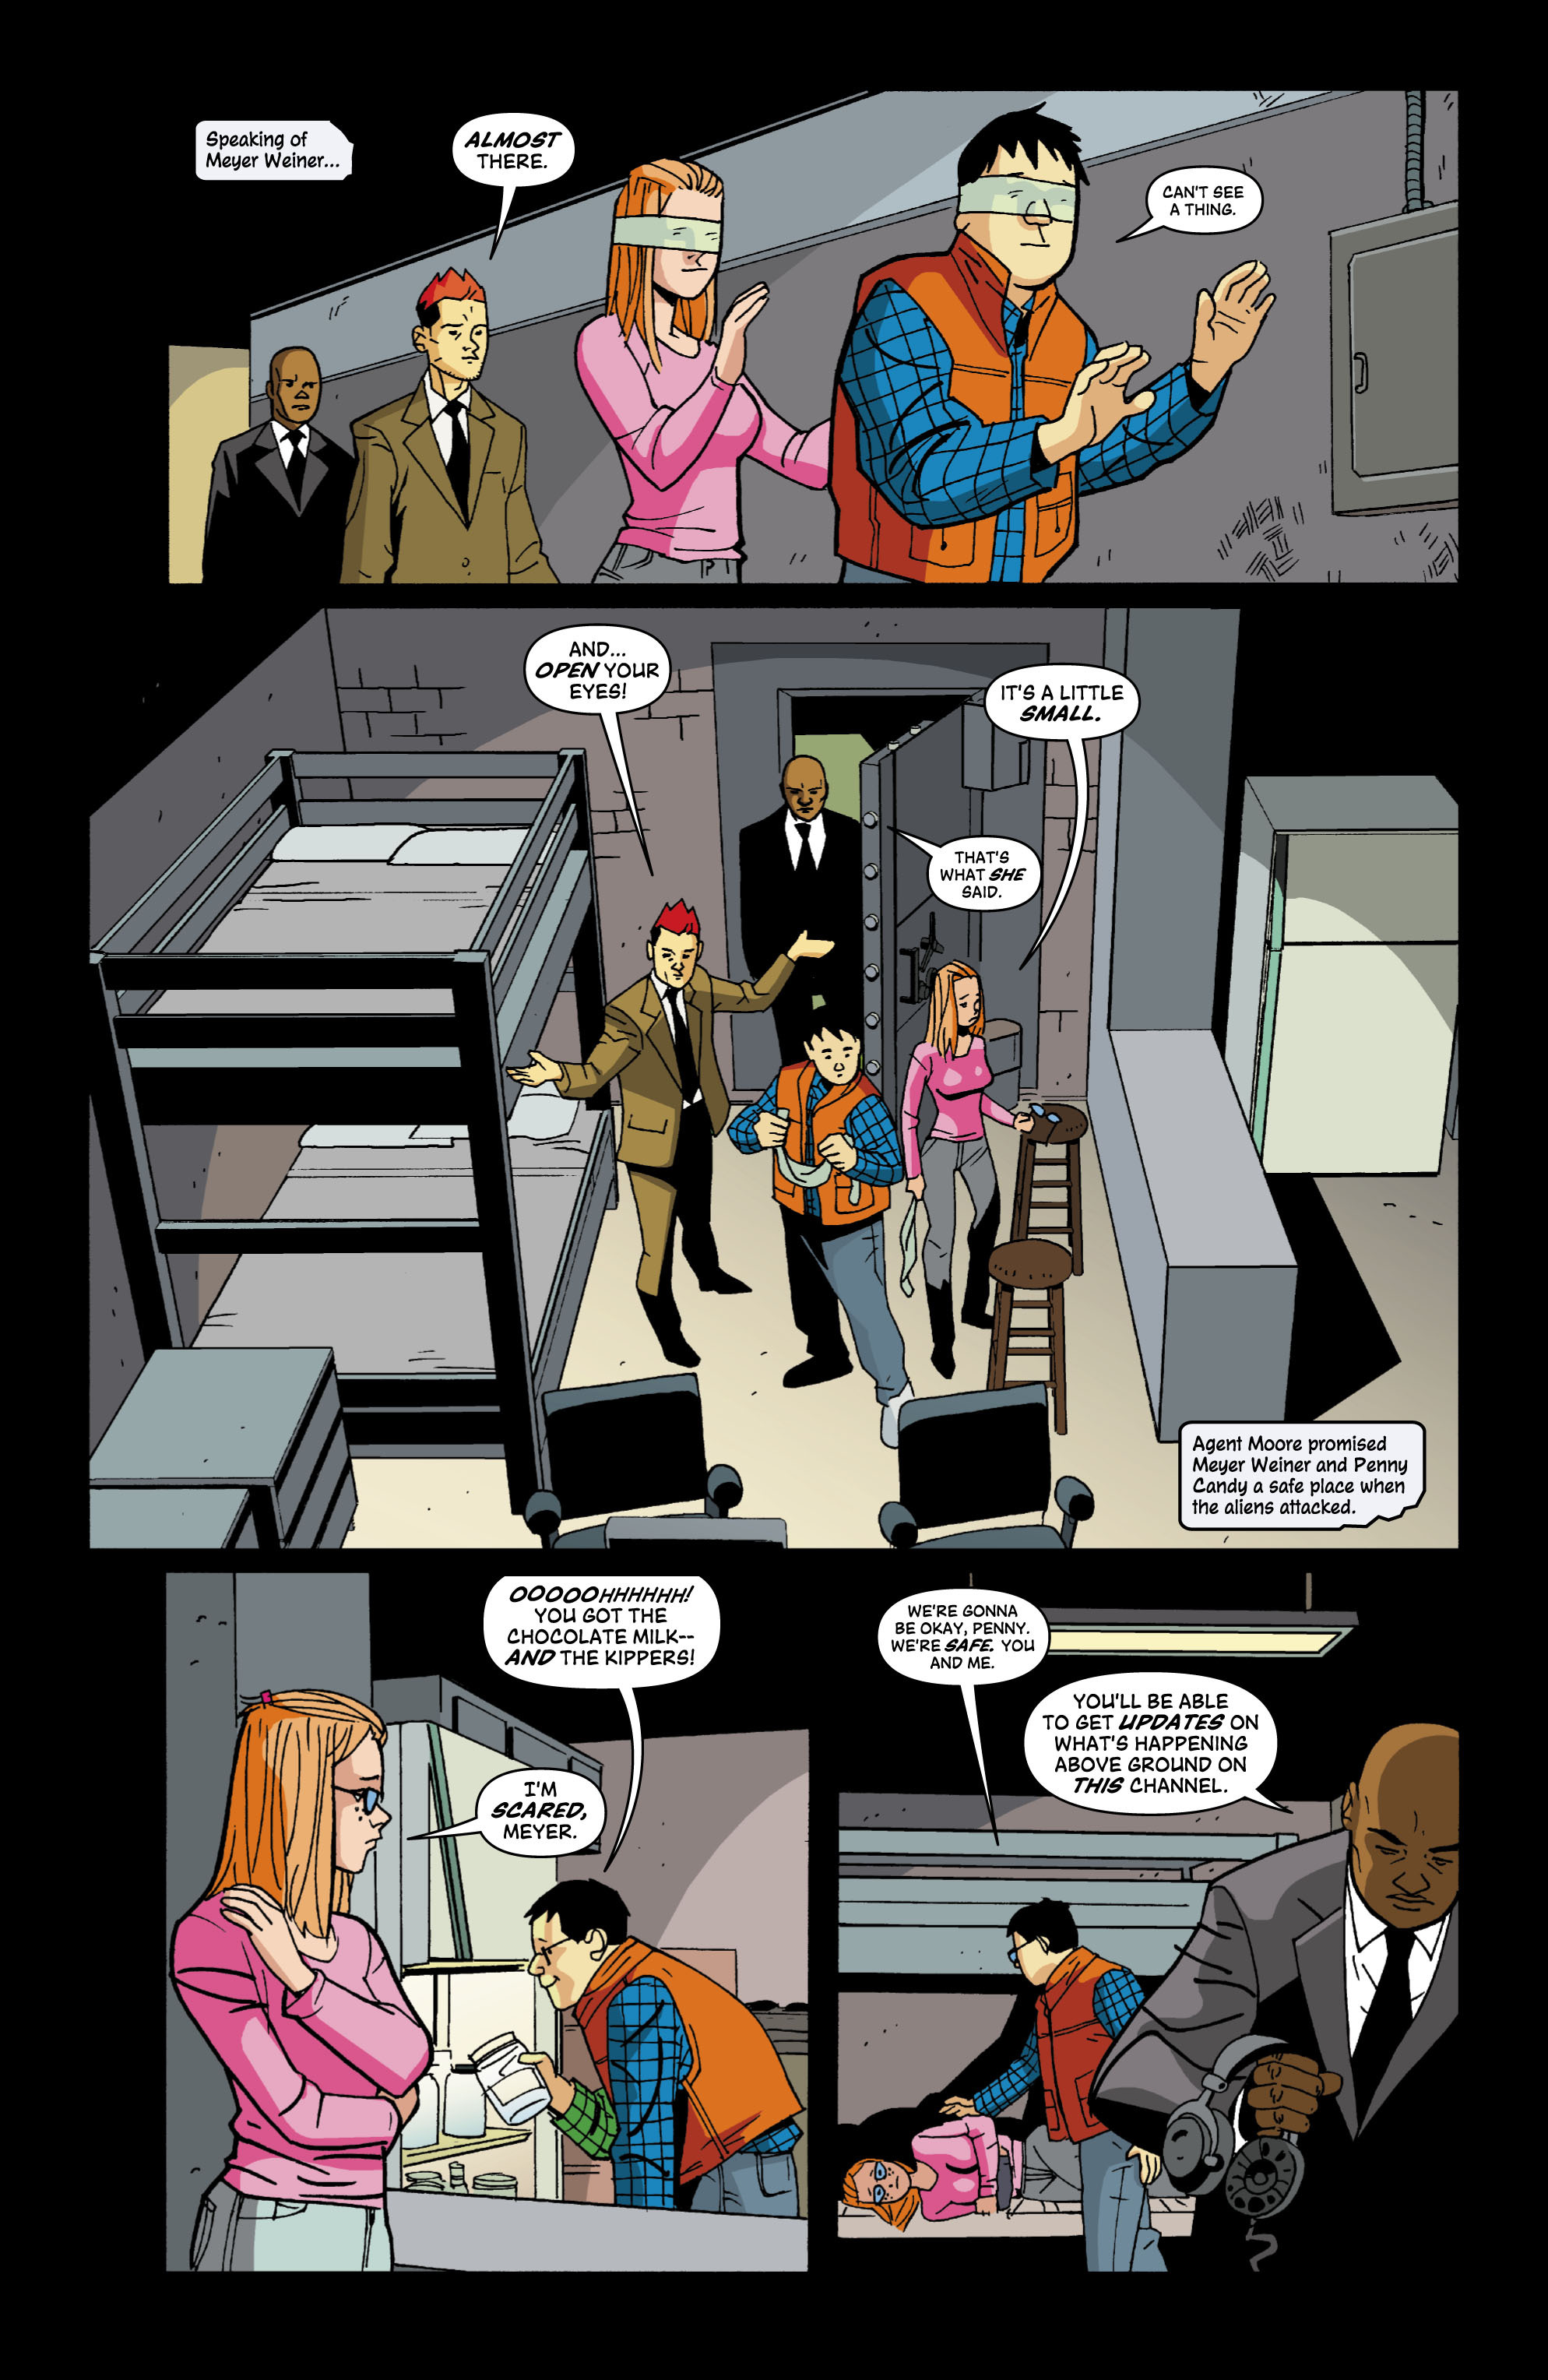 Read online Red Herring comic -  Issue #4 - 16